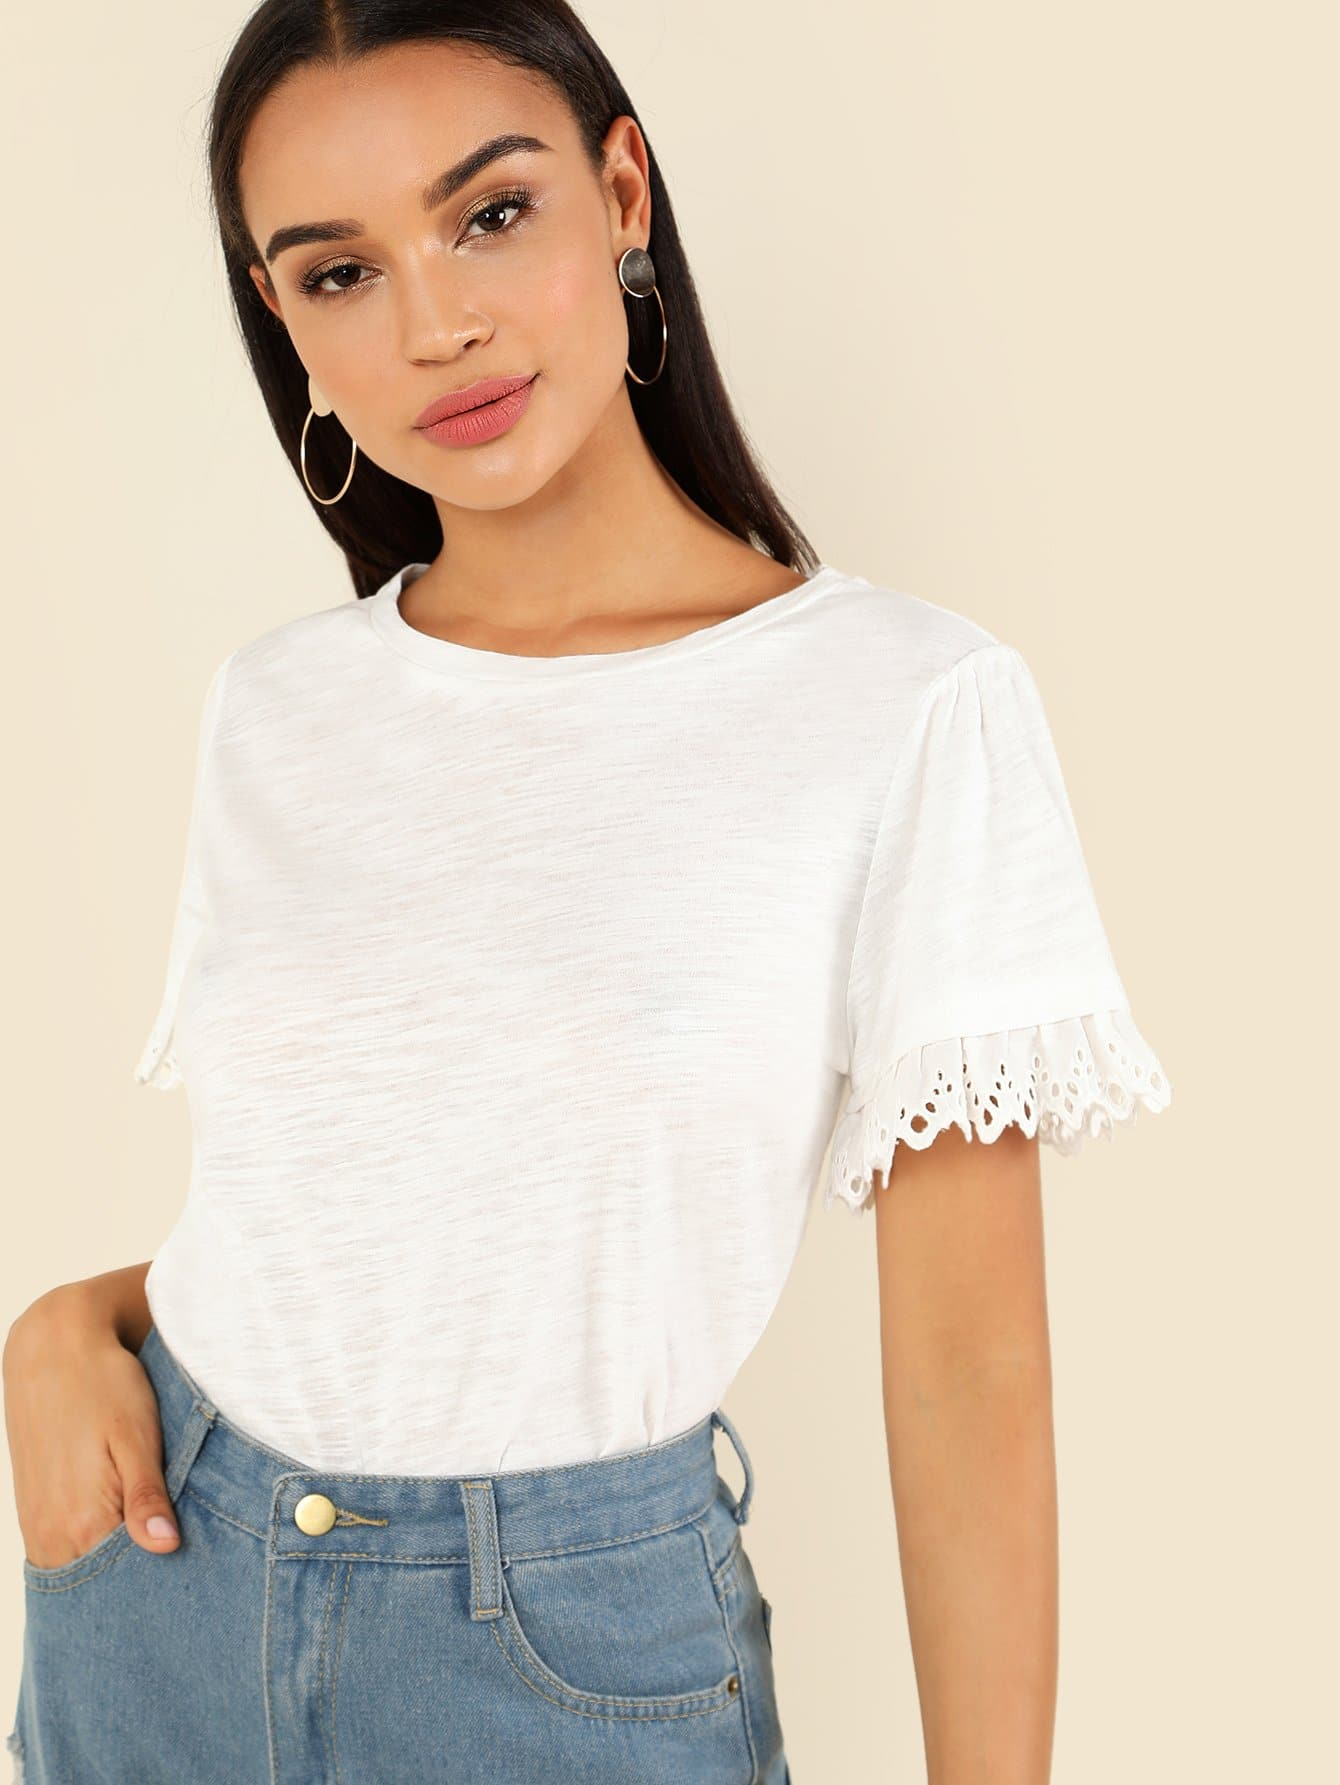 Eyelet Lace Trim Solid Tee lace trim solid top